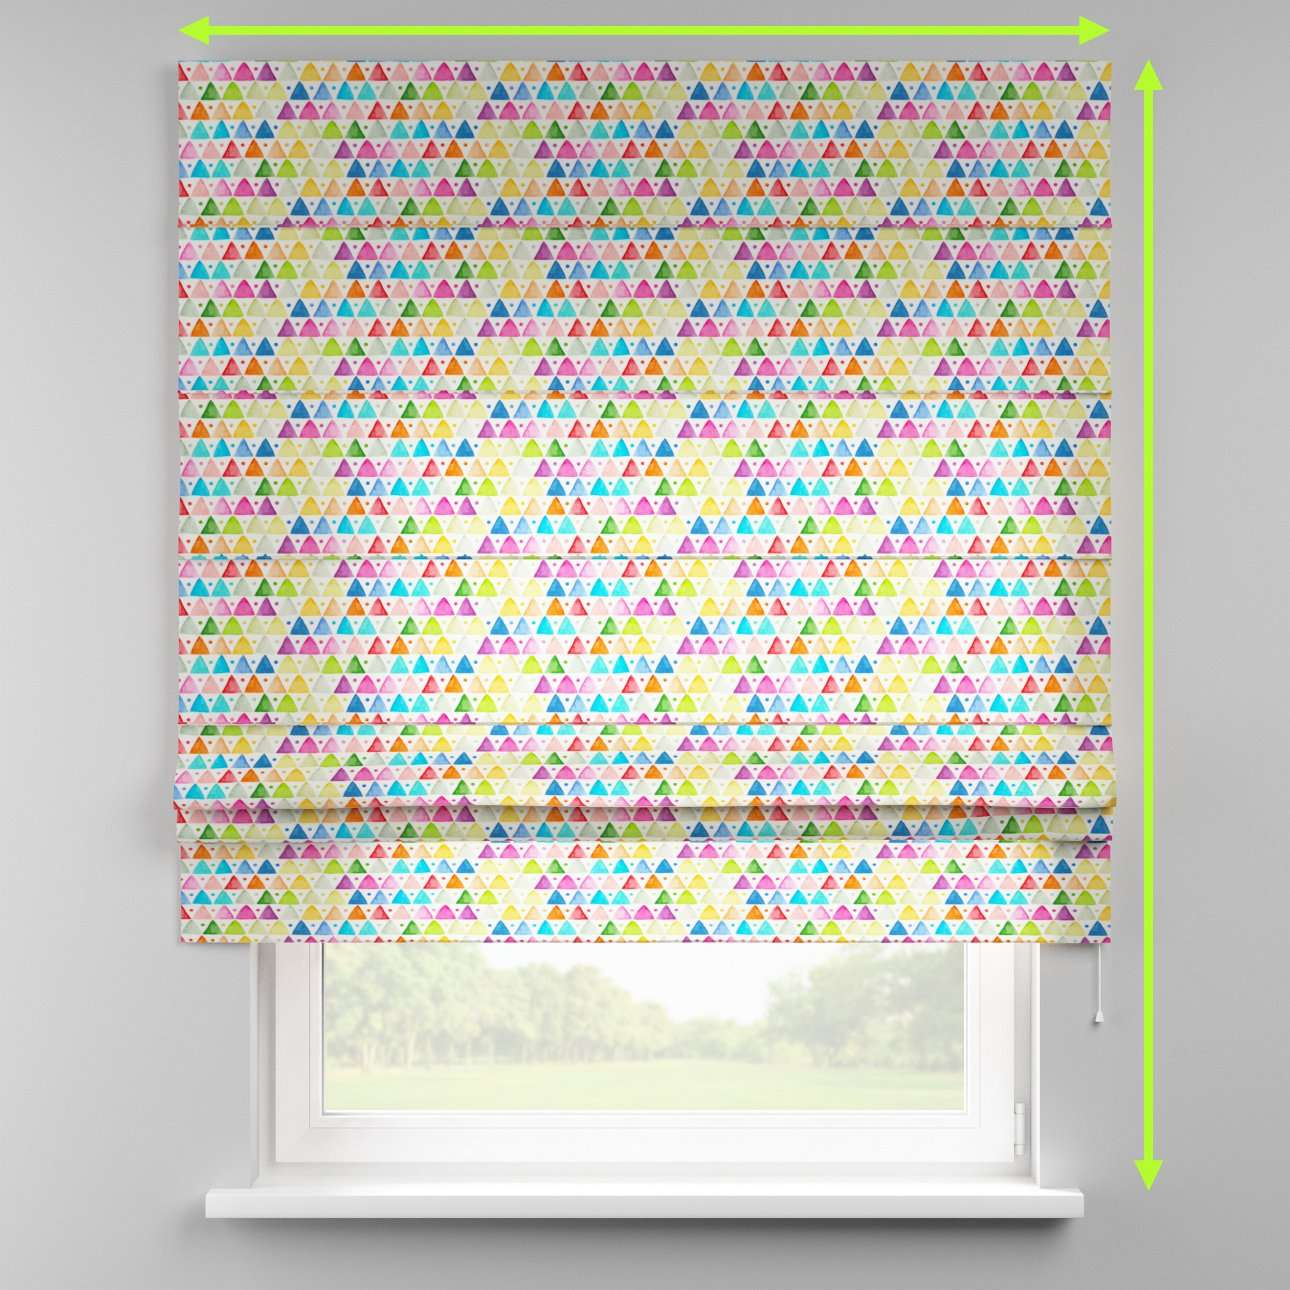 Padva roman blind  in collection New Art, fabric: 140-27